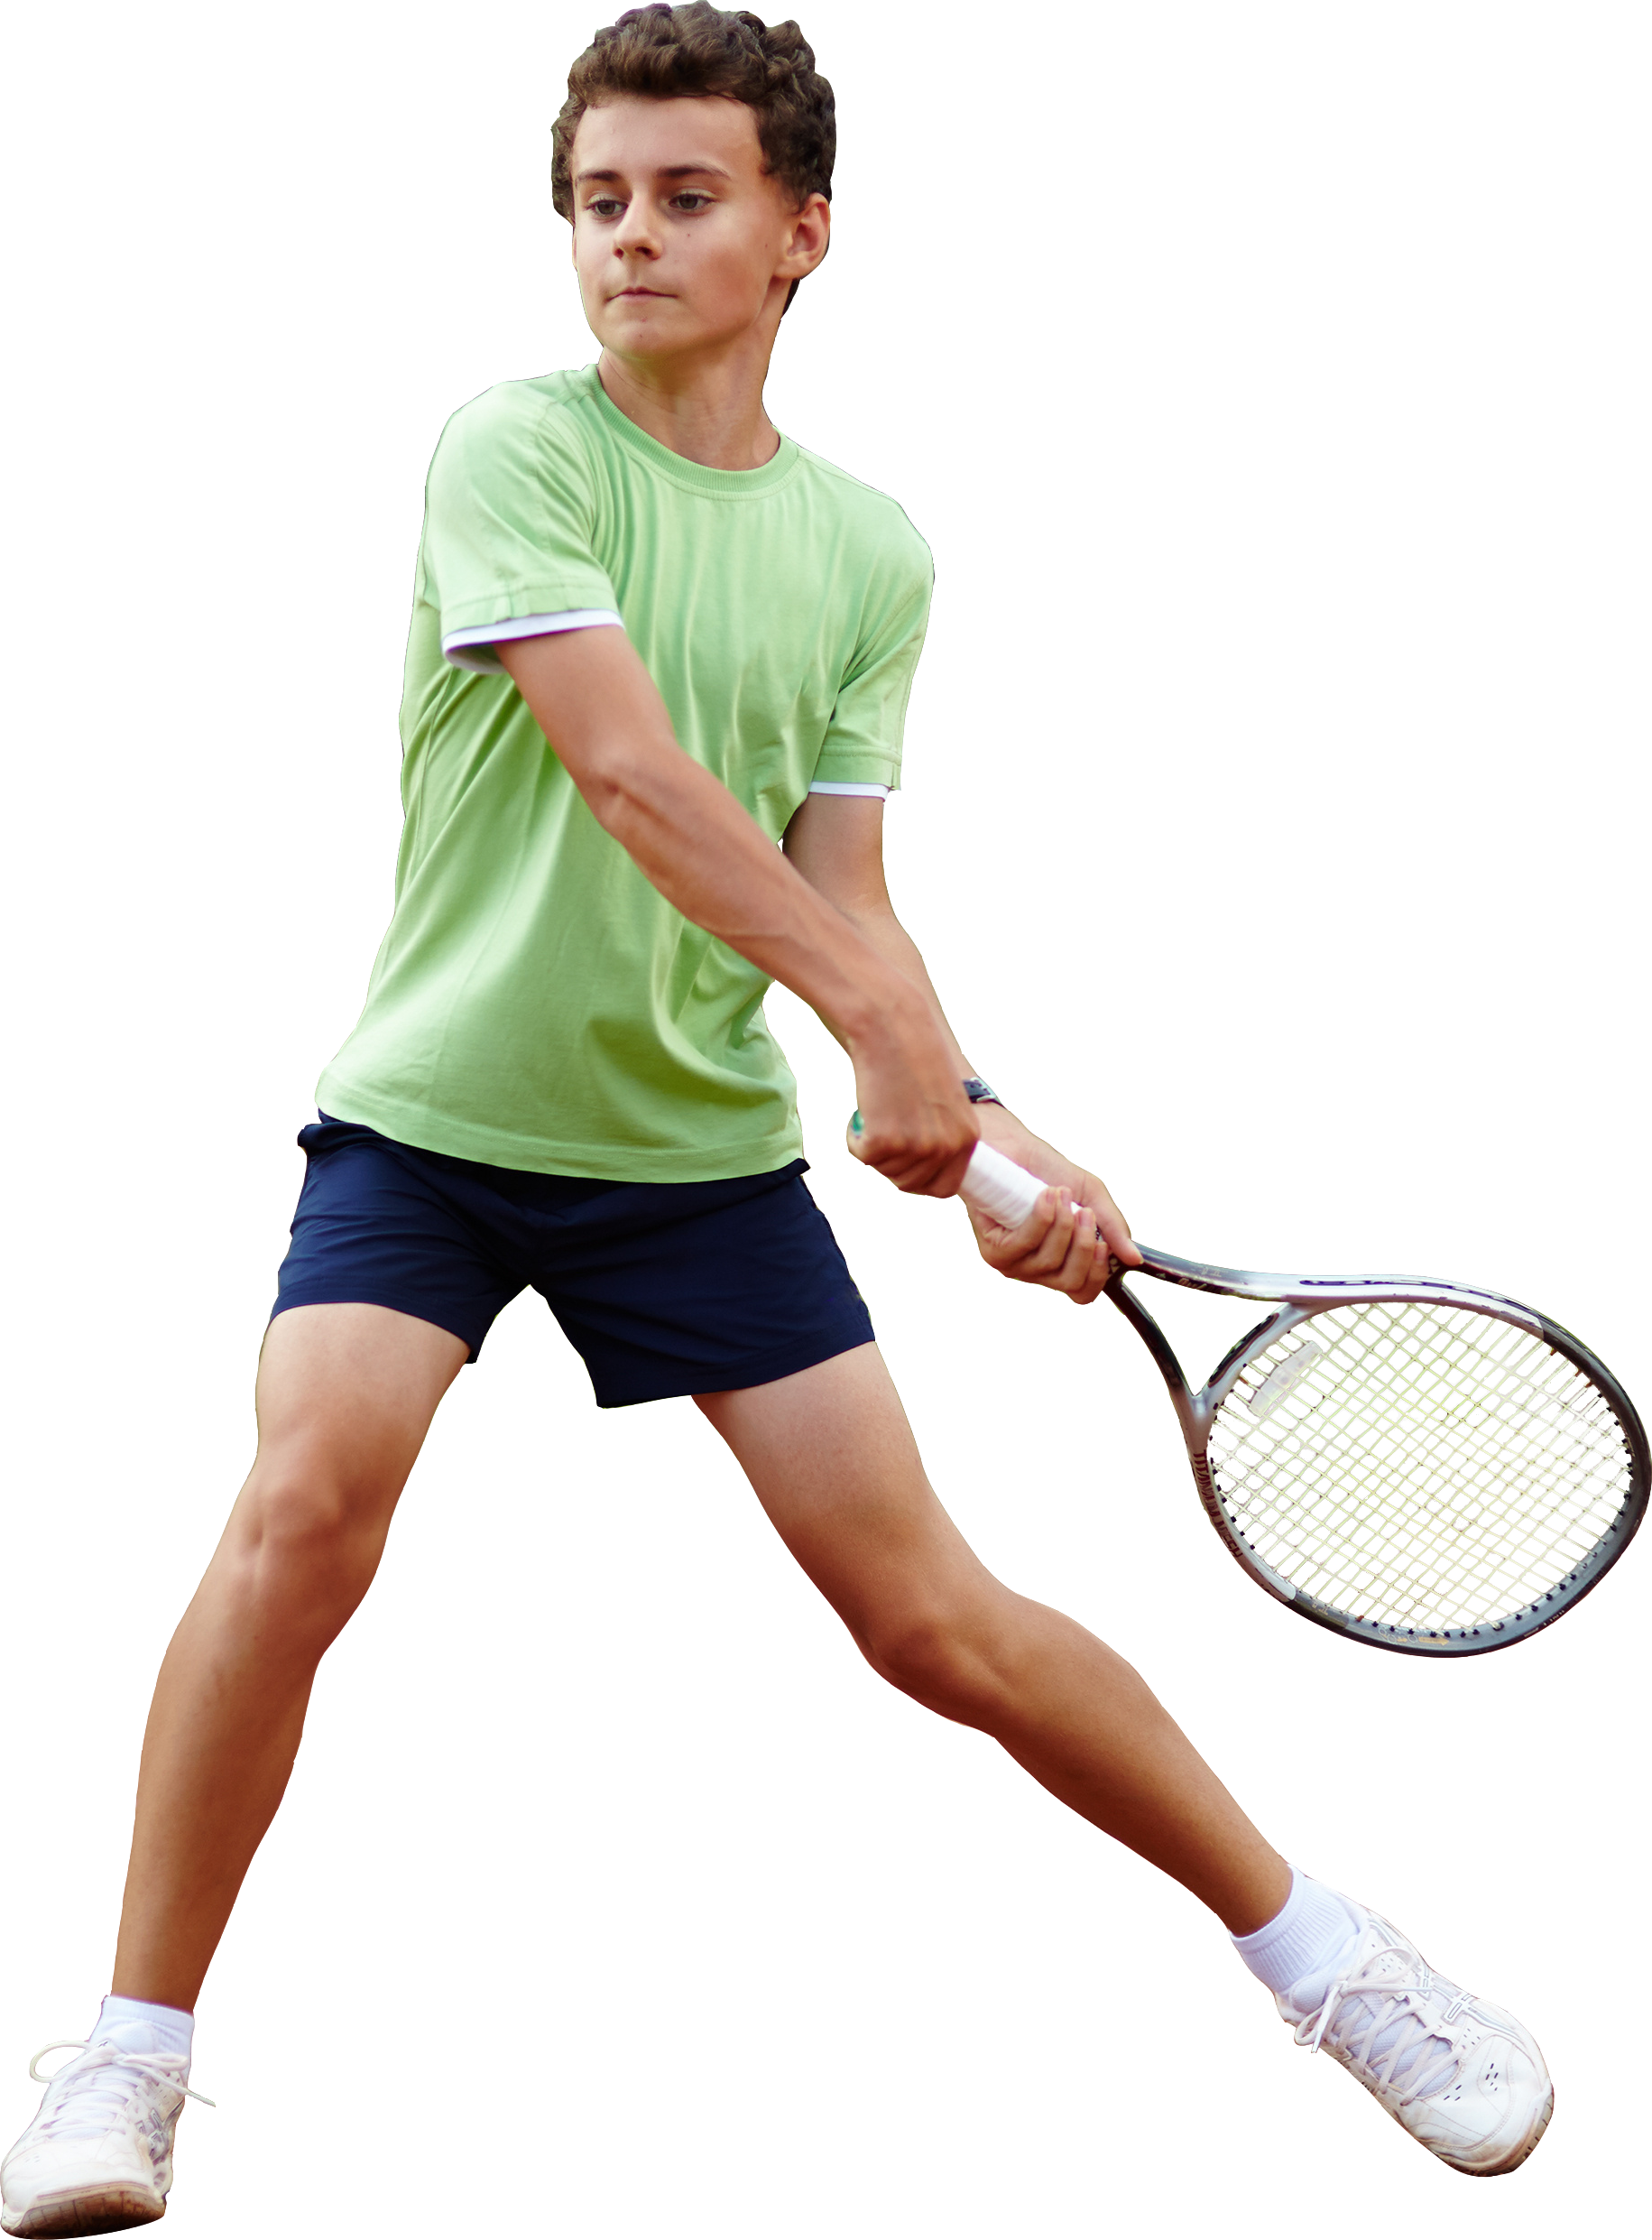 People clipart tennis. Png images free download